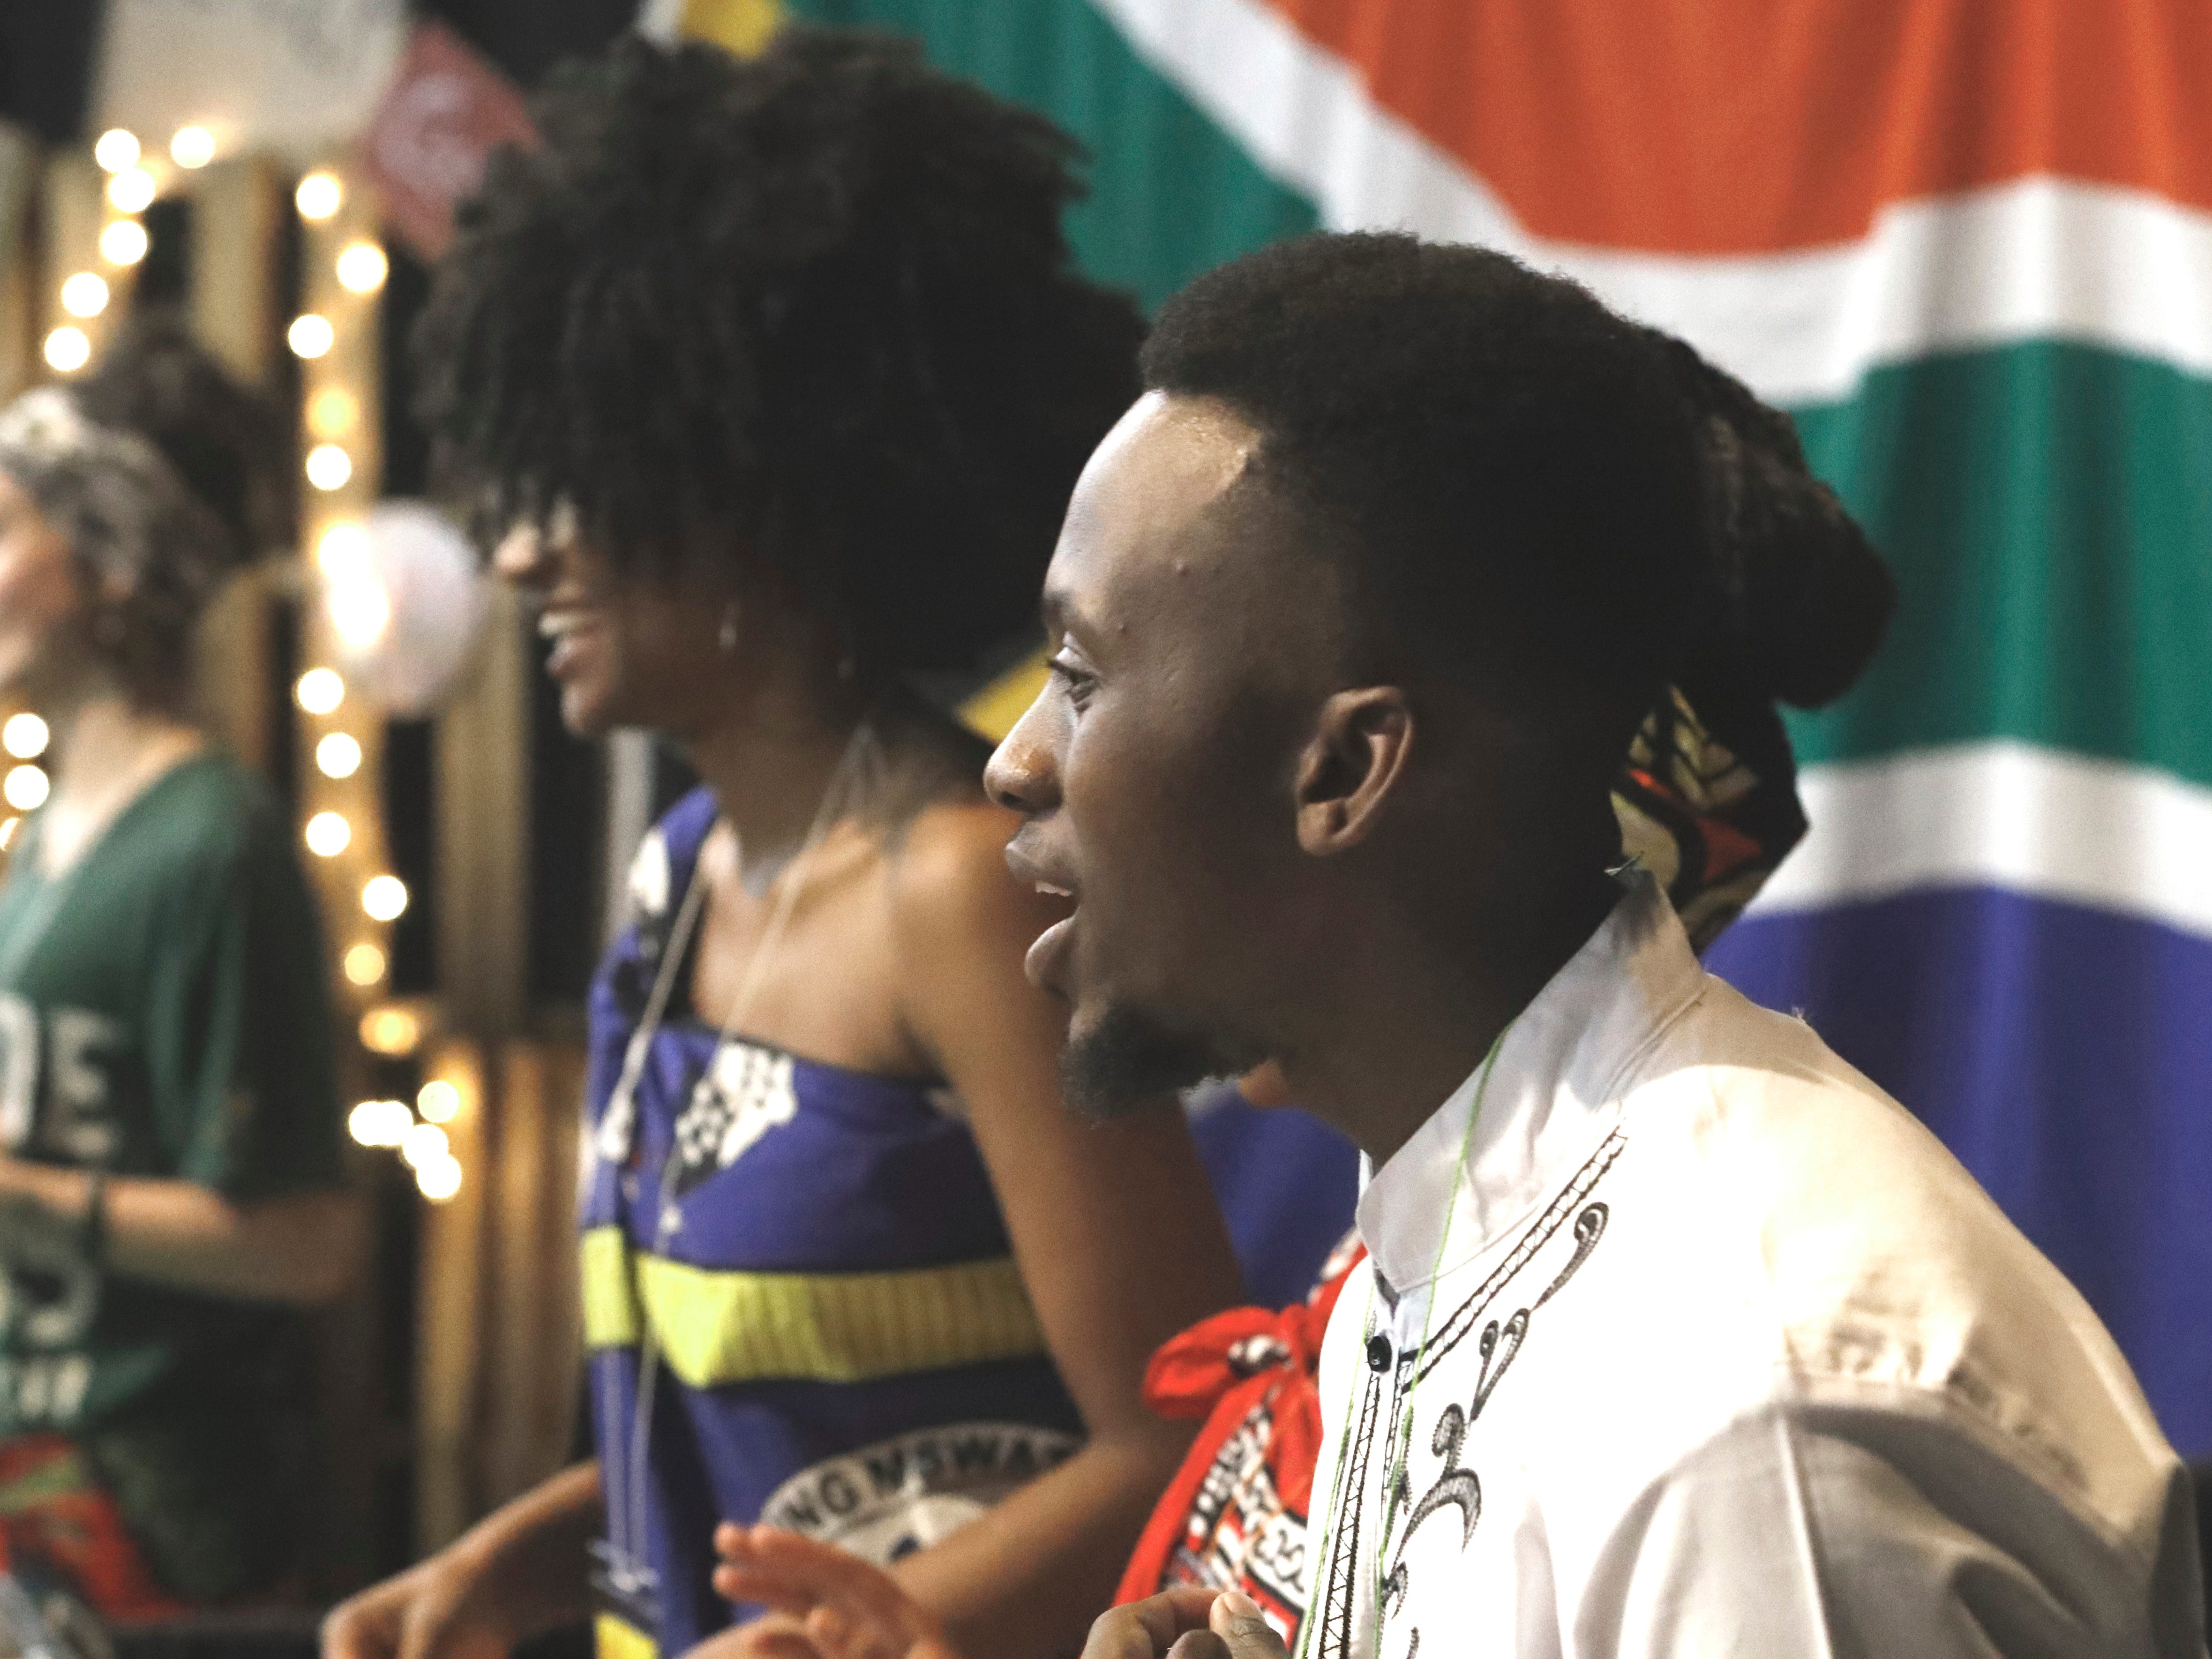 Tendo Chawane of Swaziland greets guests at his country's table during the 10th annual Festival of Cultures hosted by Bethel Church in the Redding Civic Auditorium on Feb. 9, 2019.